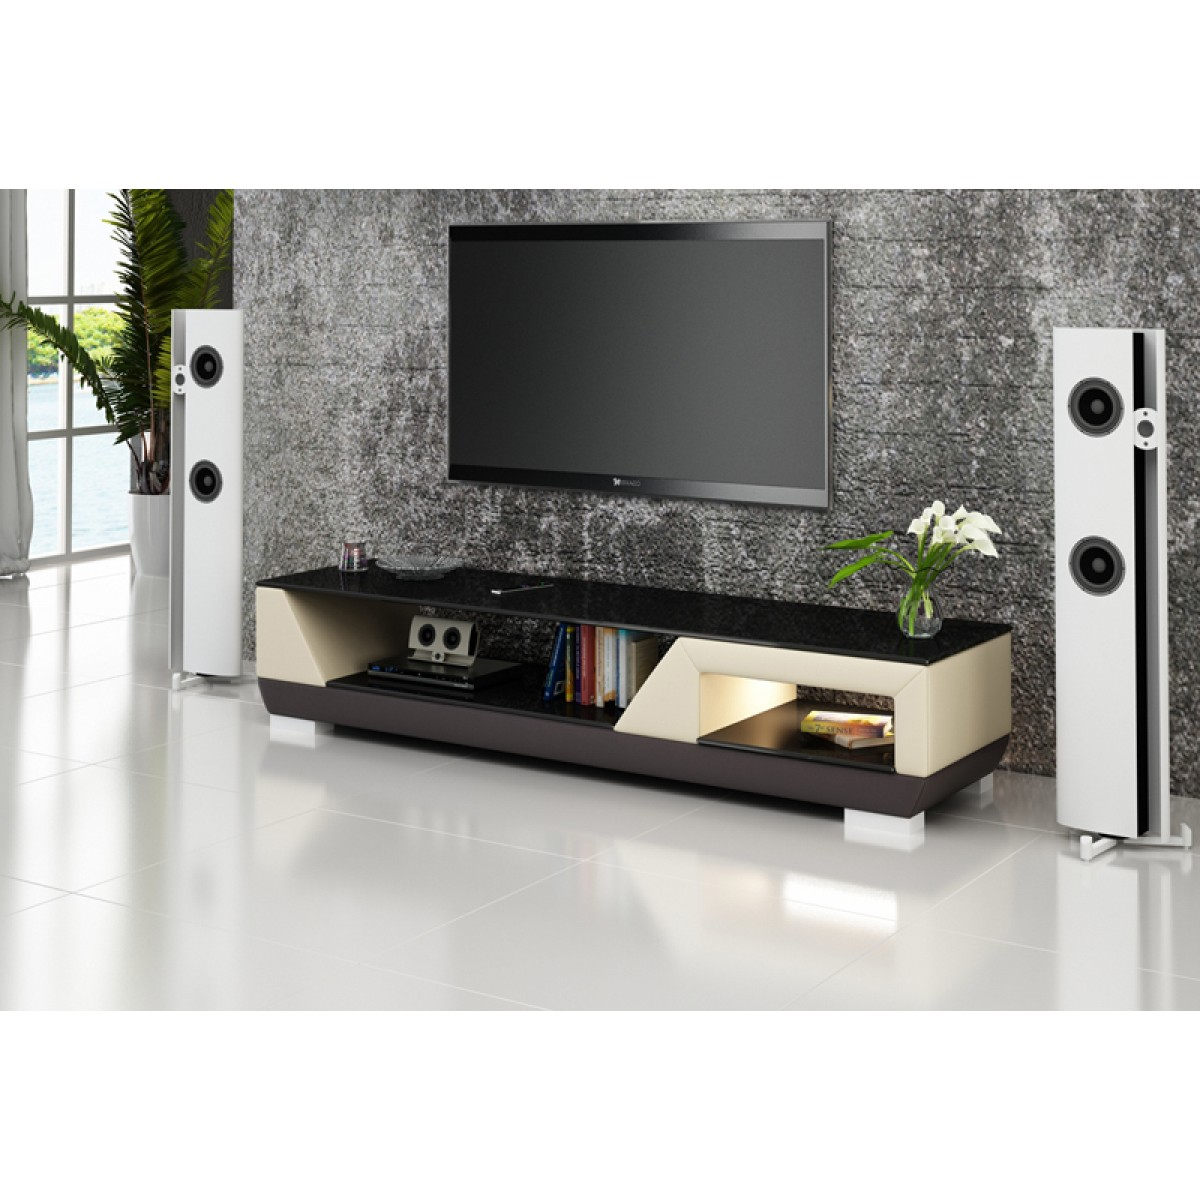 meuble tv design personnalisable klin pu aspect cuir pop. Black Bedroom Furniture Sets. Home Design Ideas